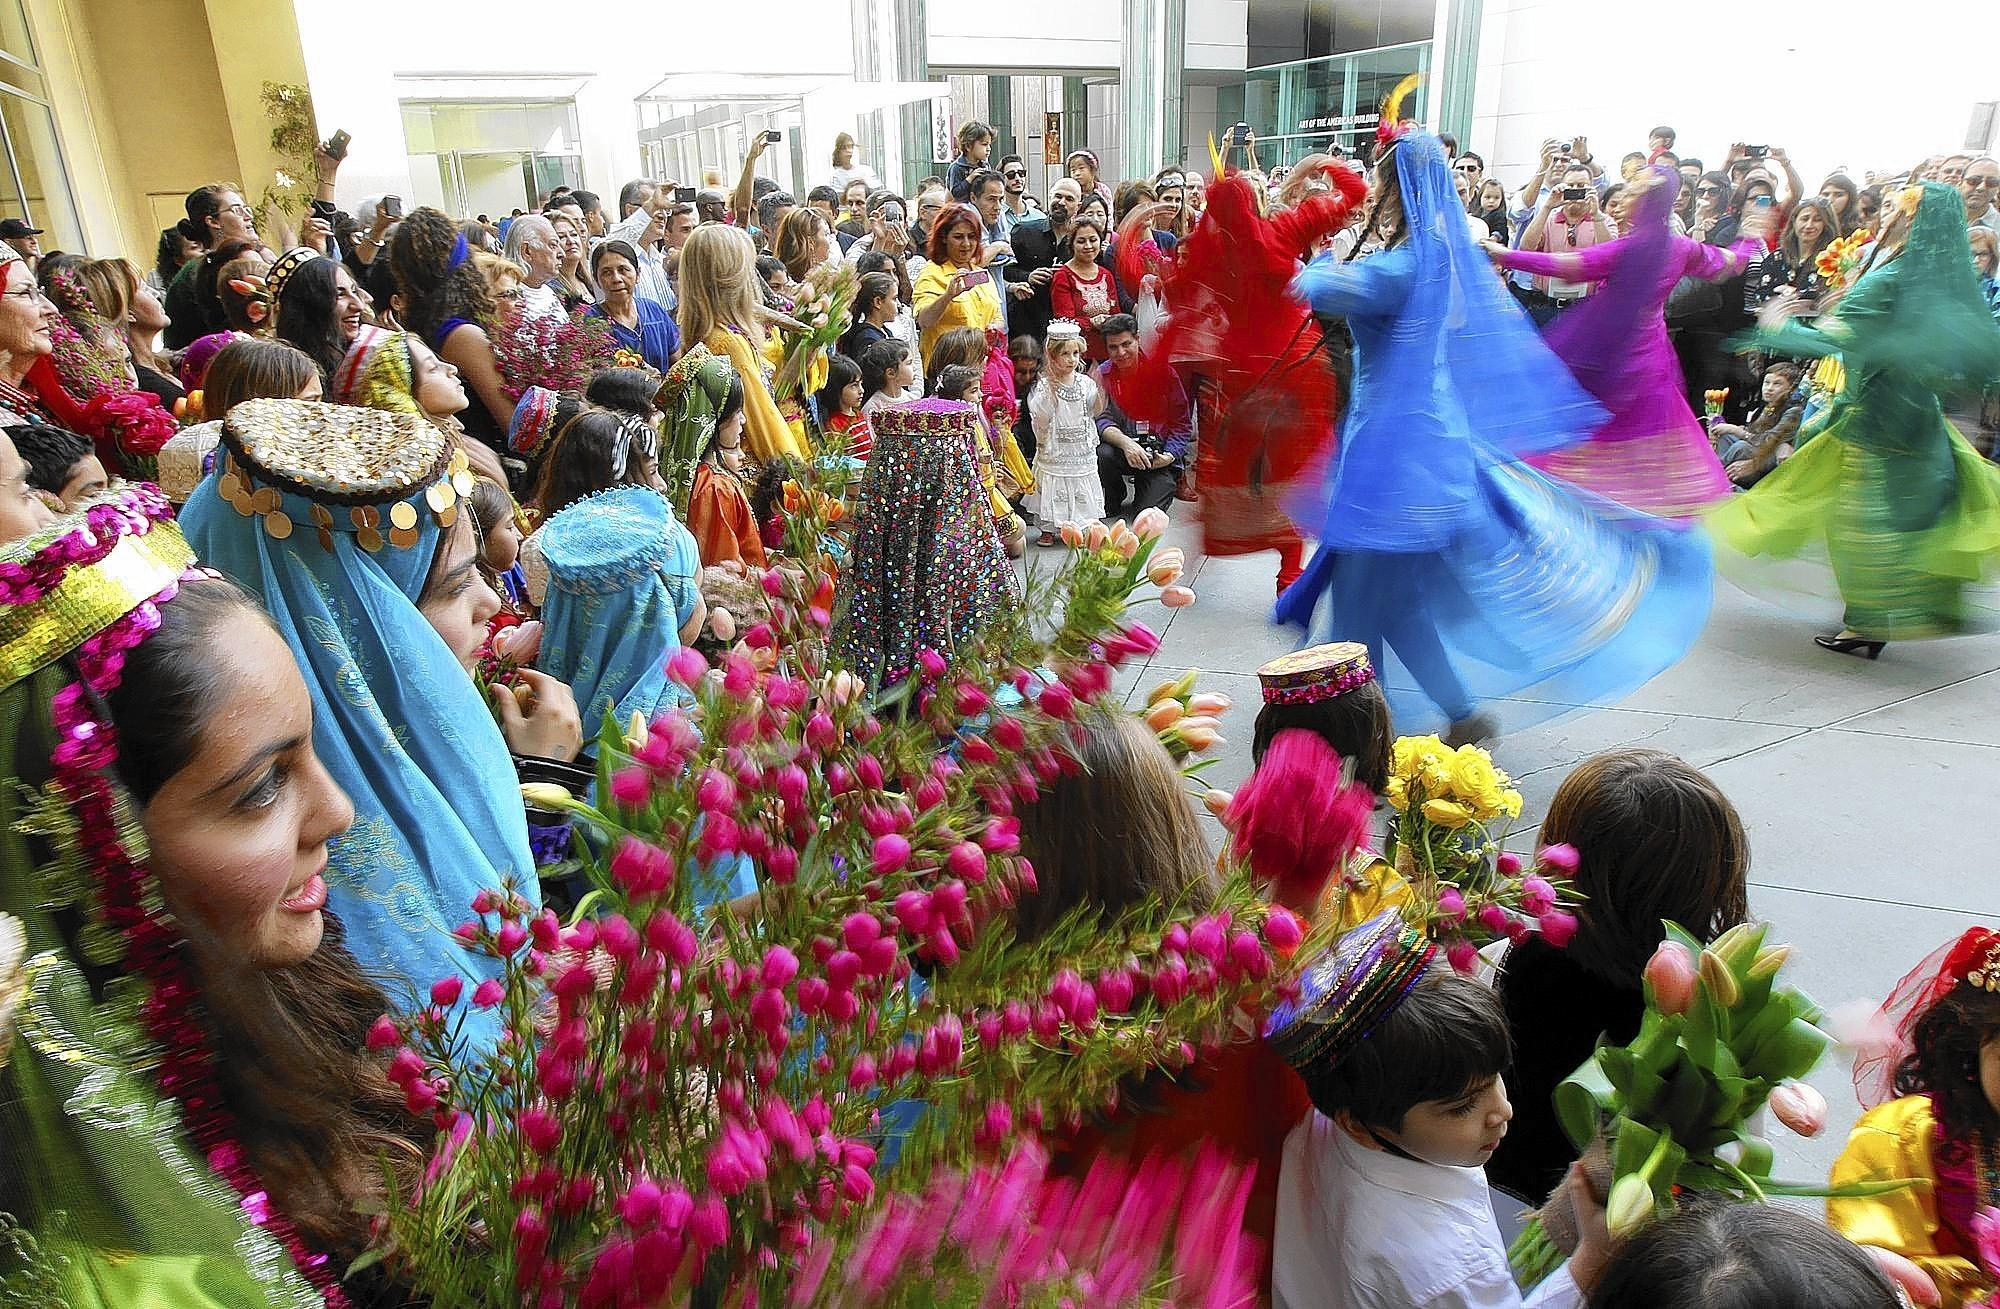 Dancers dressed in traditional Persian garments are surrounded by celebrants during an Iranian New Year celebration at the Los Angeles County Museum of Art.